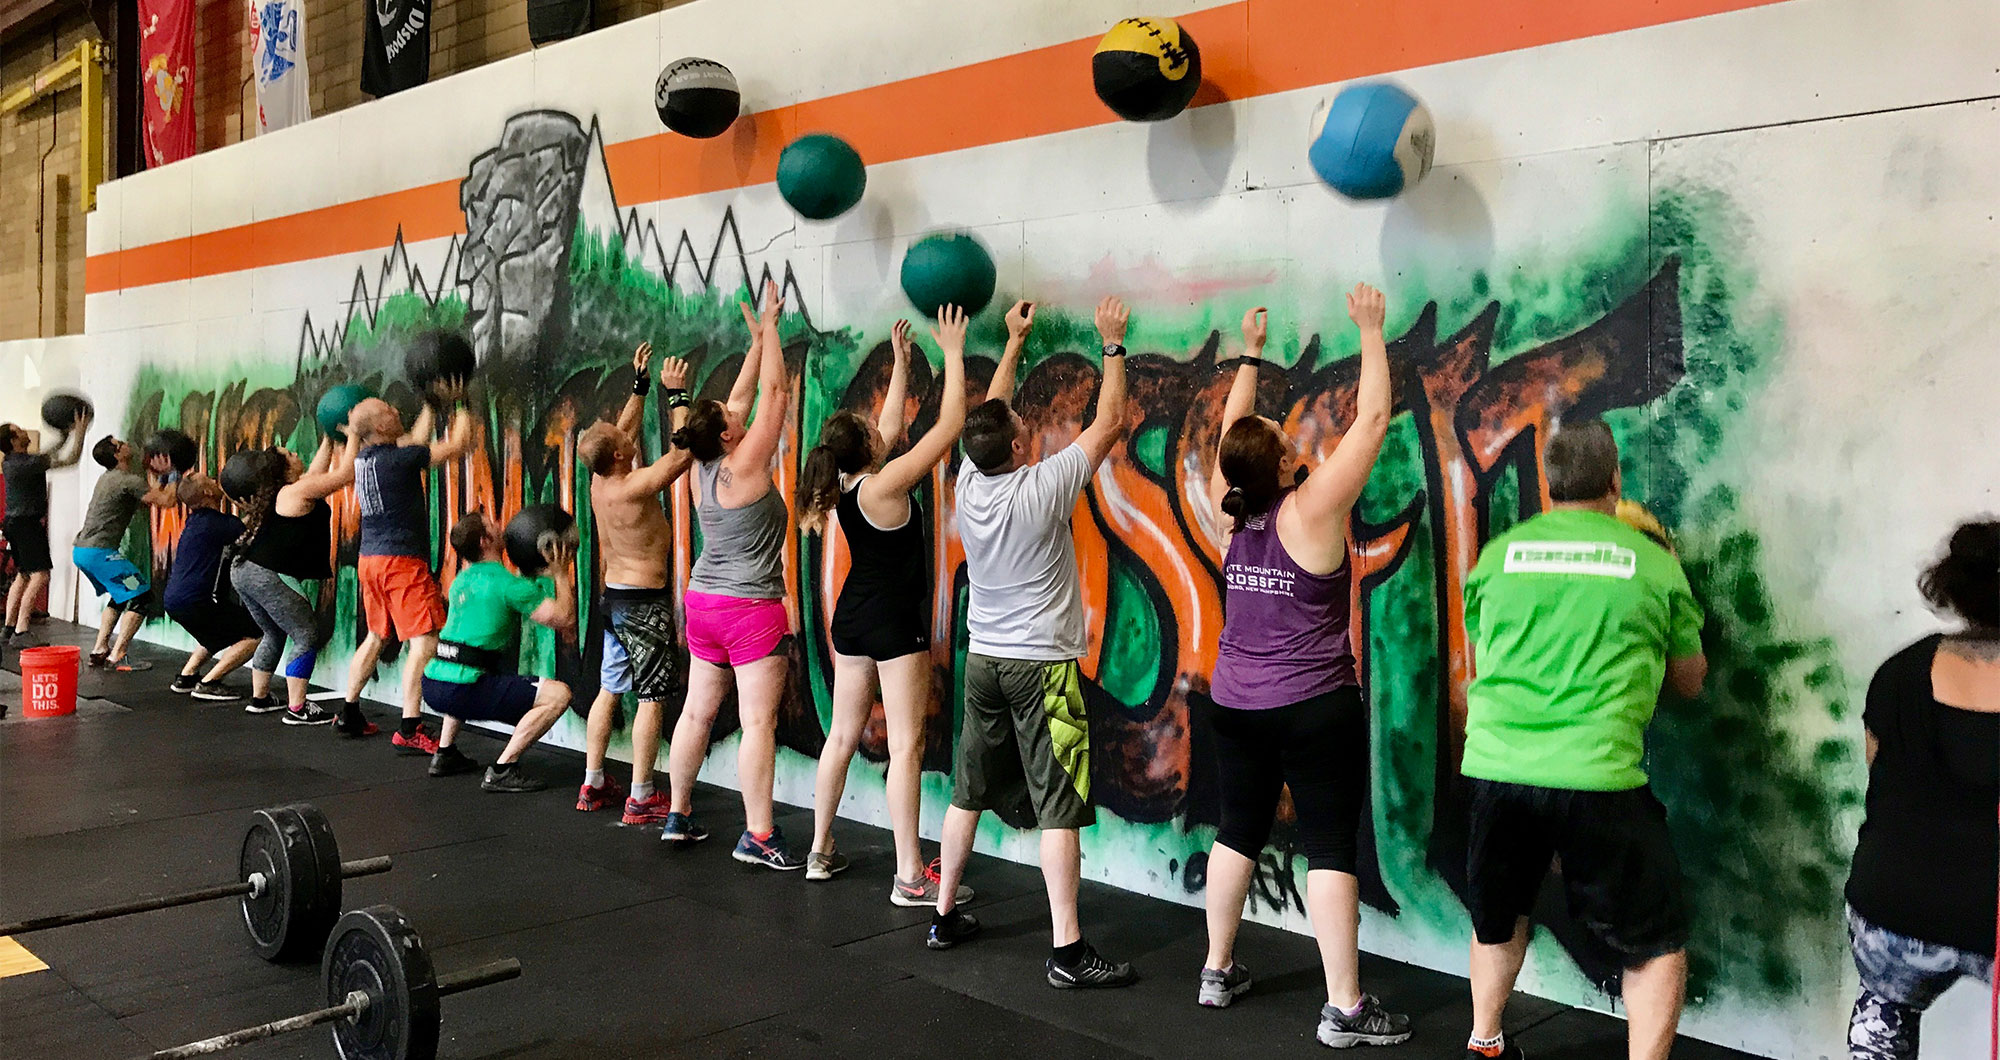 White Mountain Crossfit (603) 224-7203 contact@whitemtncrossfit.com 1  Ripley St, Concord, NH 03301.